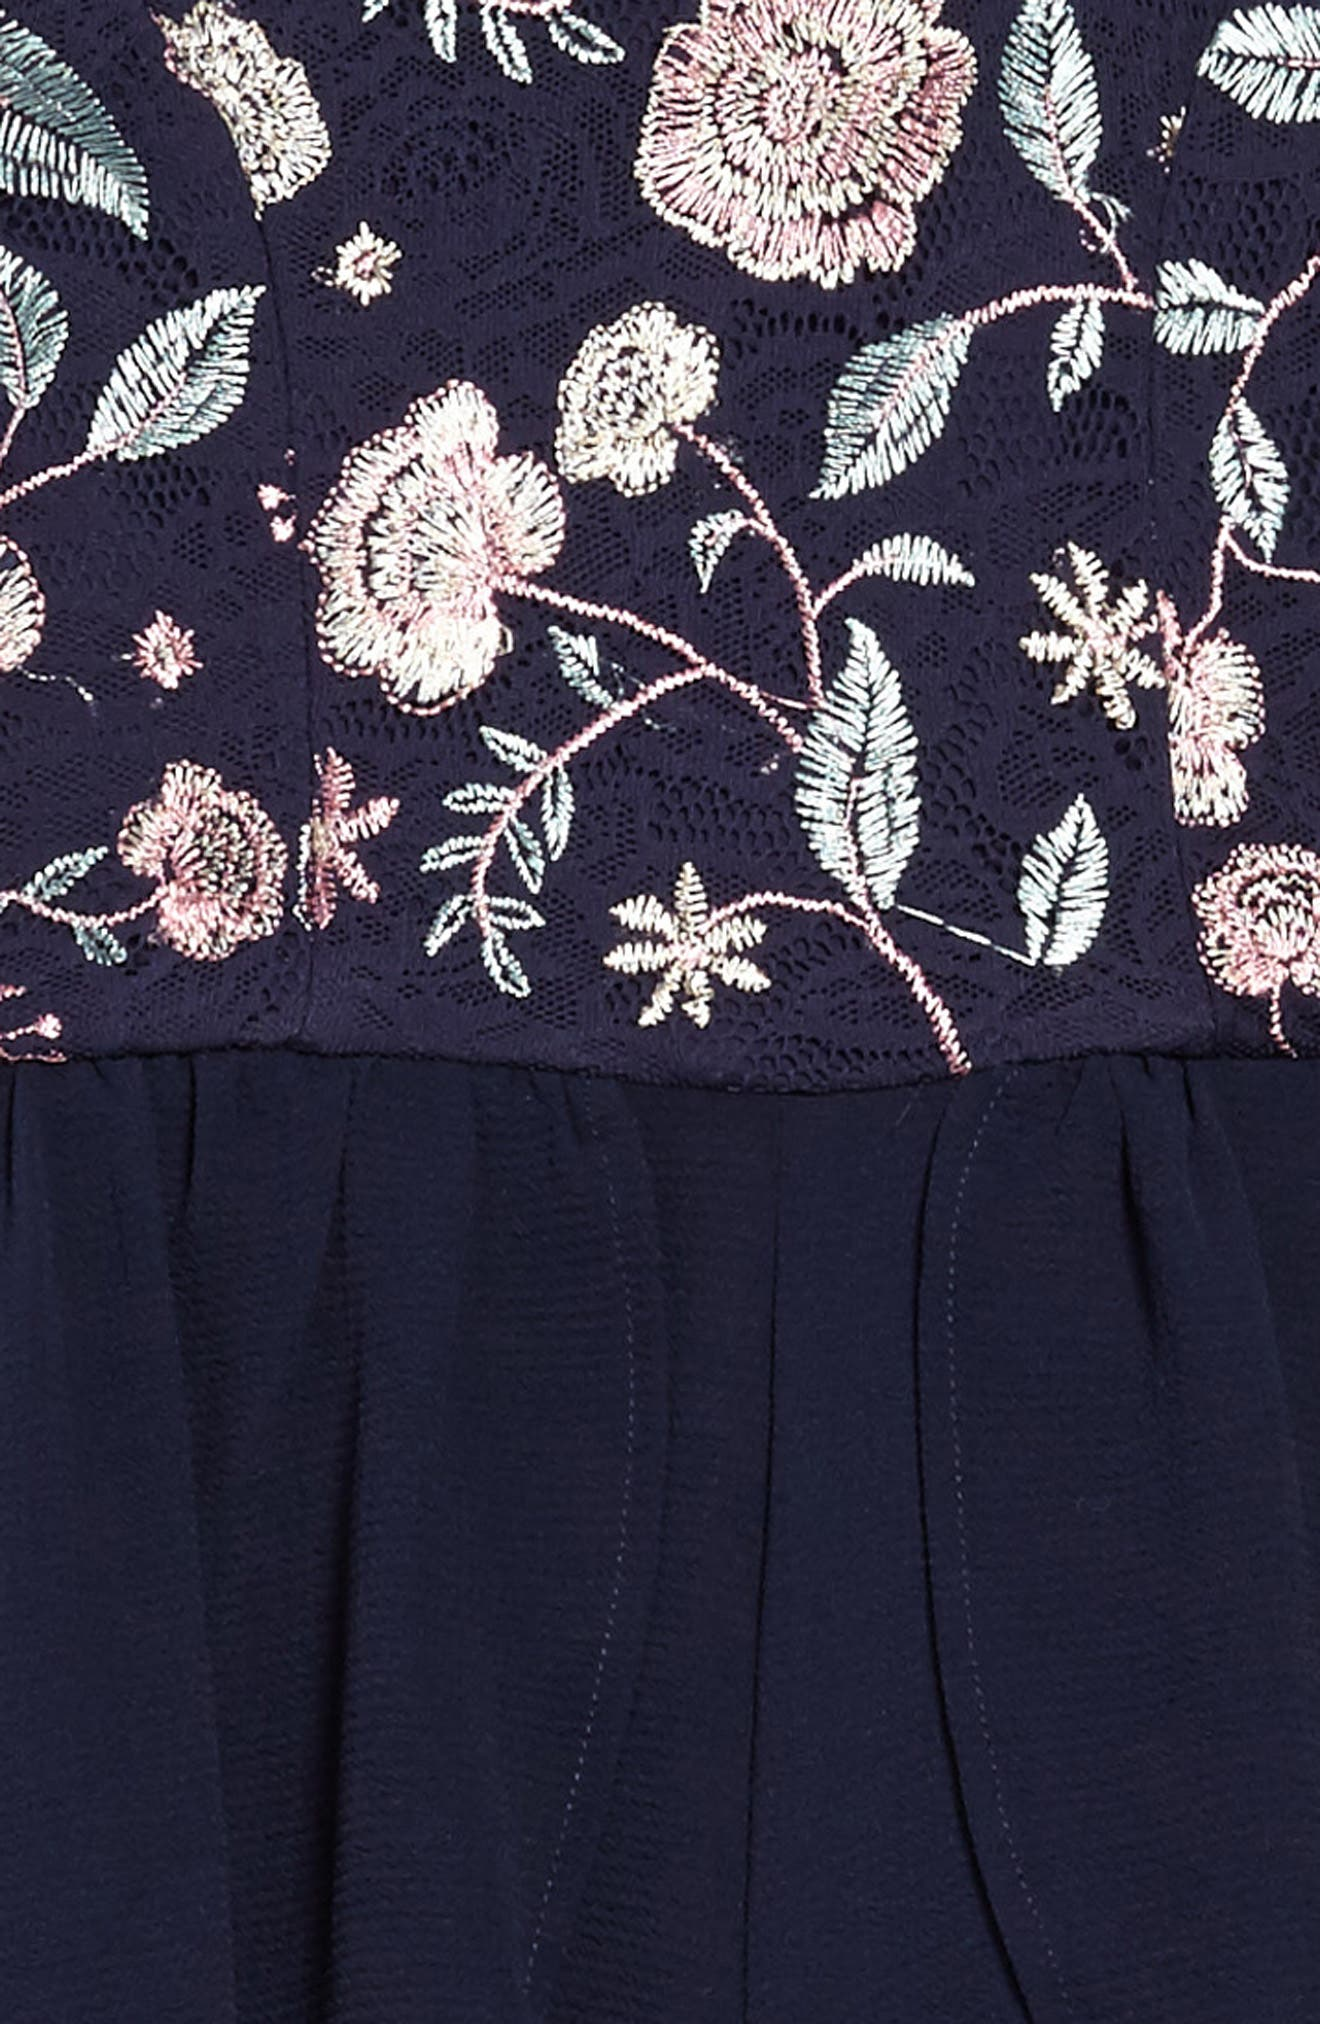 Floral Embroidered Walk Through Romper,                             Alternate thumbnail 3, color,                             001